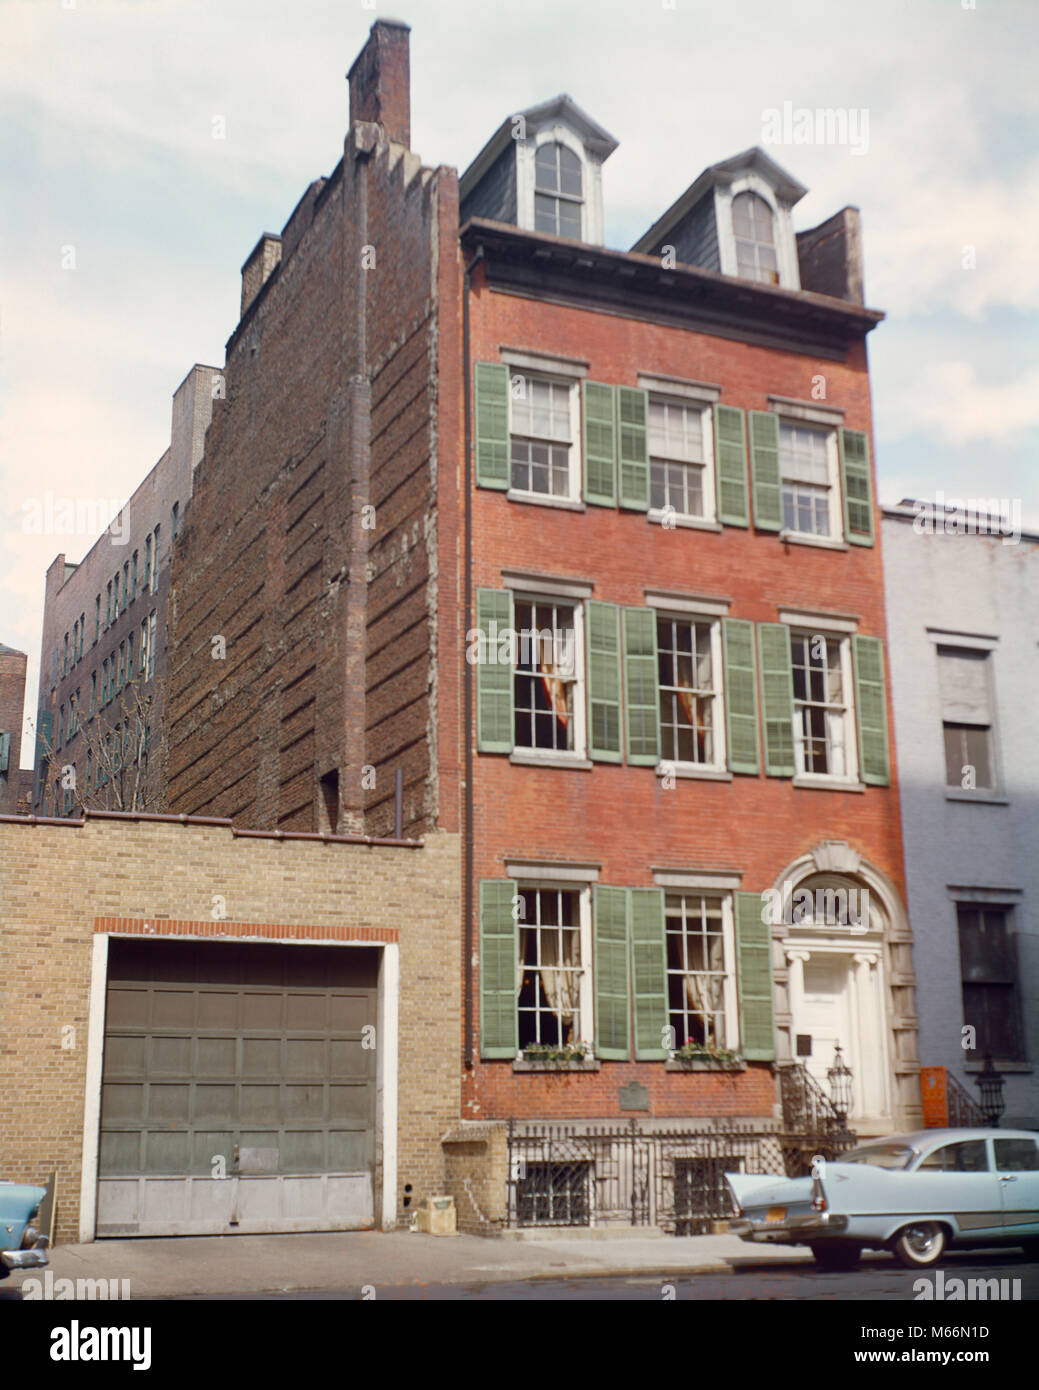 1960s 19TH CENTURY 1832 FAMILY HOME PRESERVED INTACT MERCHANT'S HOUSE MUSEUM DOWNTOWN MANHATTAN NYC USA - kr132232 - Stock Image